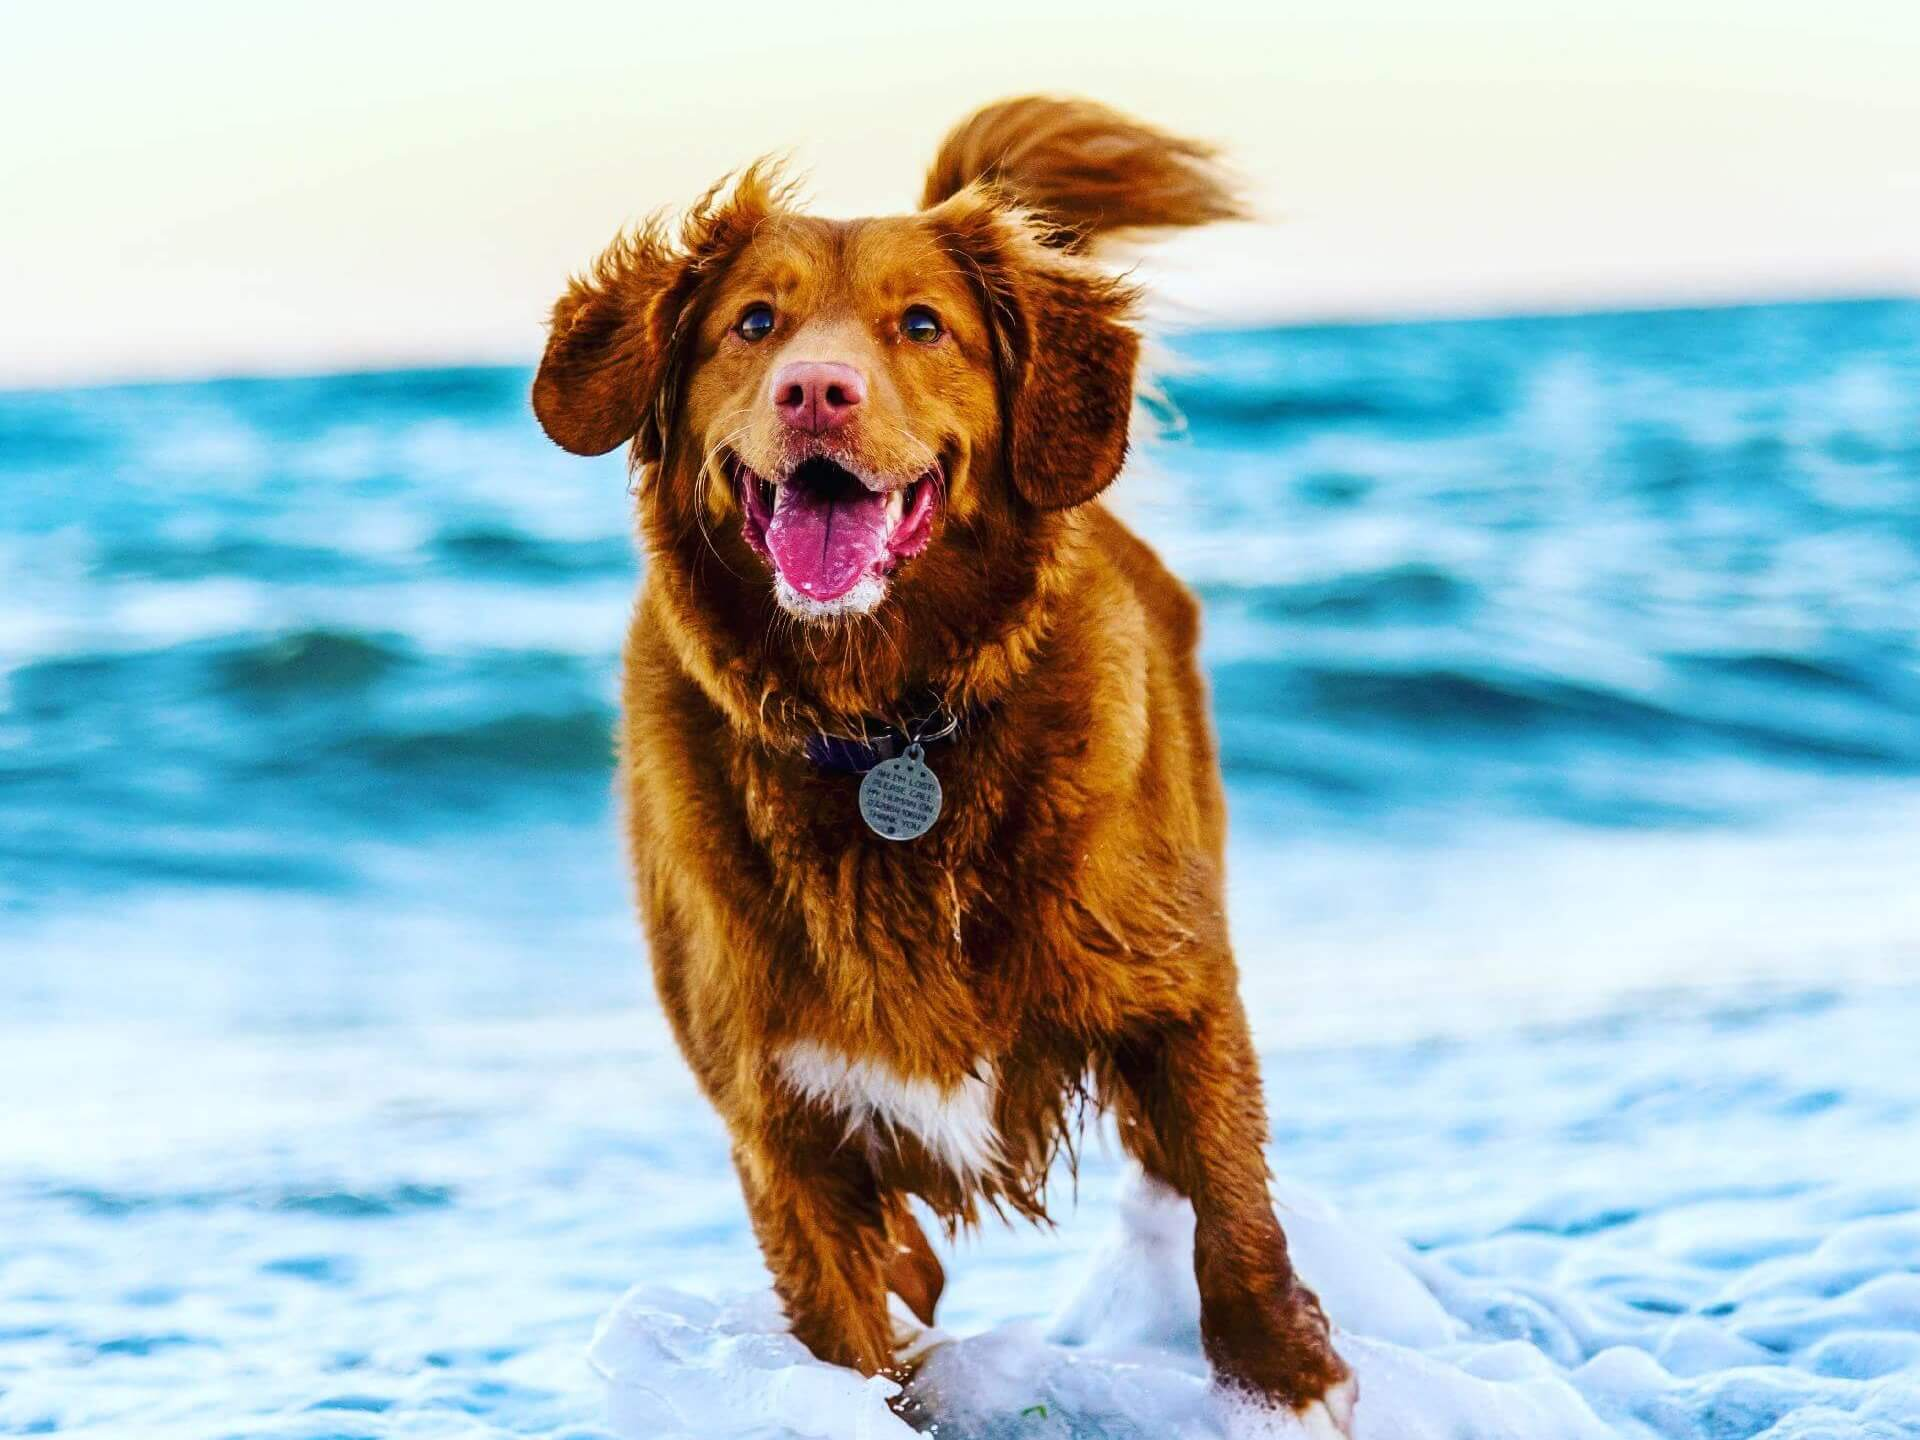 Healthy and active dog running on the beach